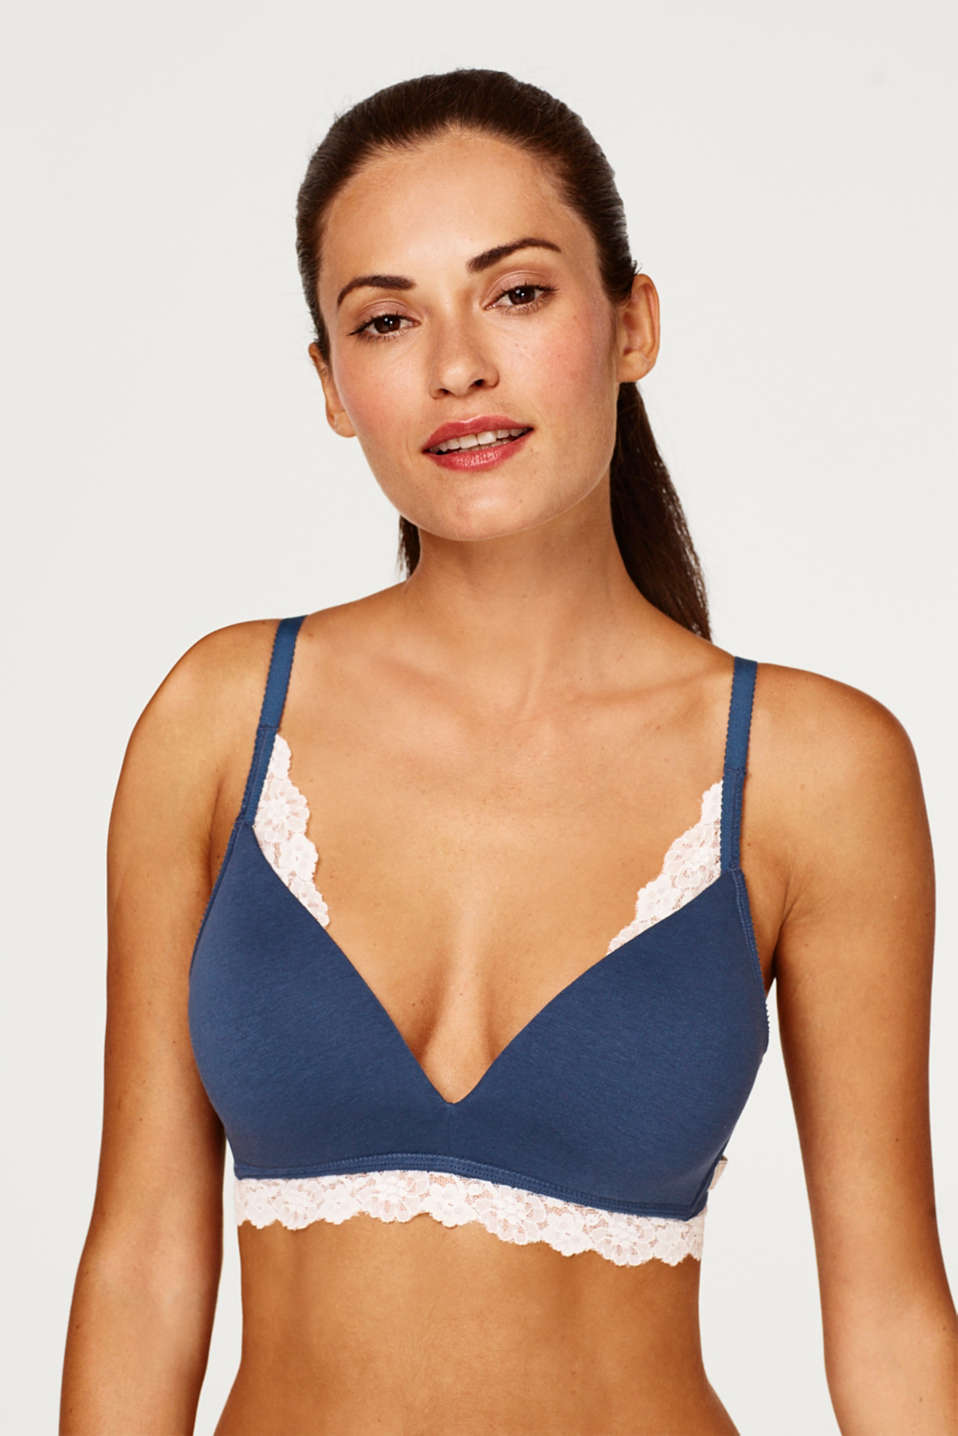 Esprit - Padded, non-wired bra made of jersey/lace